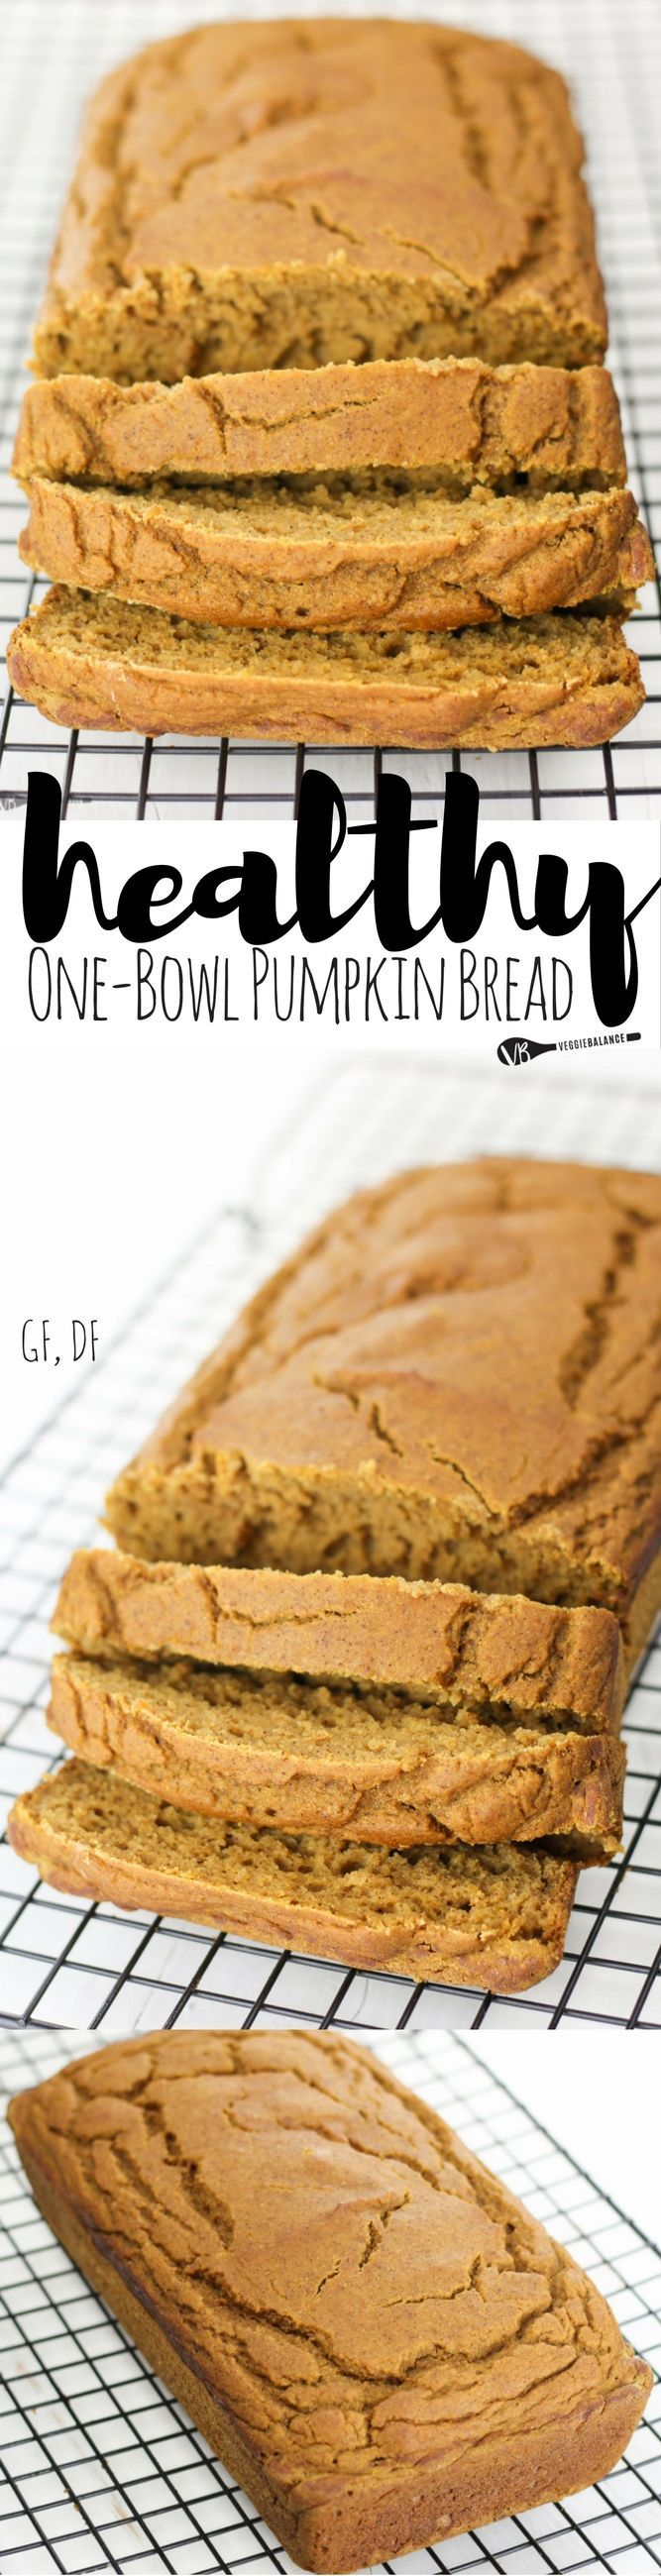 Gluten-Free Pumpkin Bread recipe made healthy! The perfect quick bread made in one-bowl to satisfy those pumpkin cravings. {Gluten-Free, Dairy-Free, Low-Sugar}